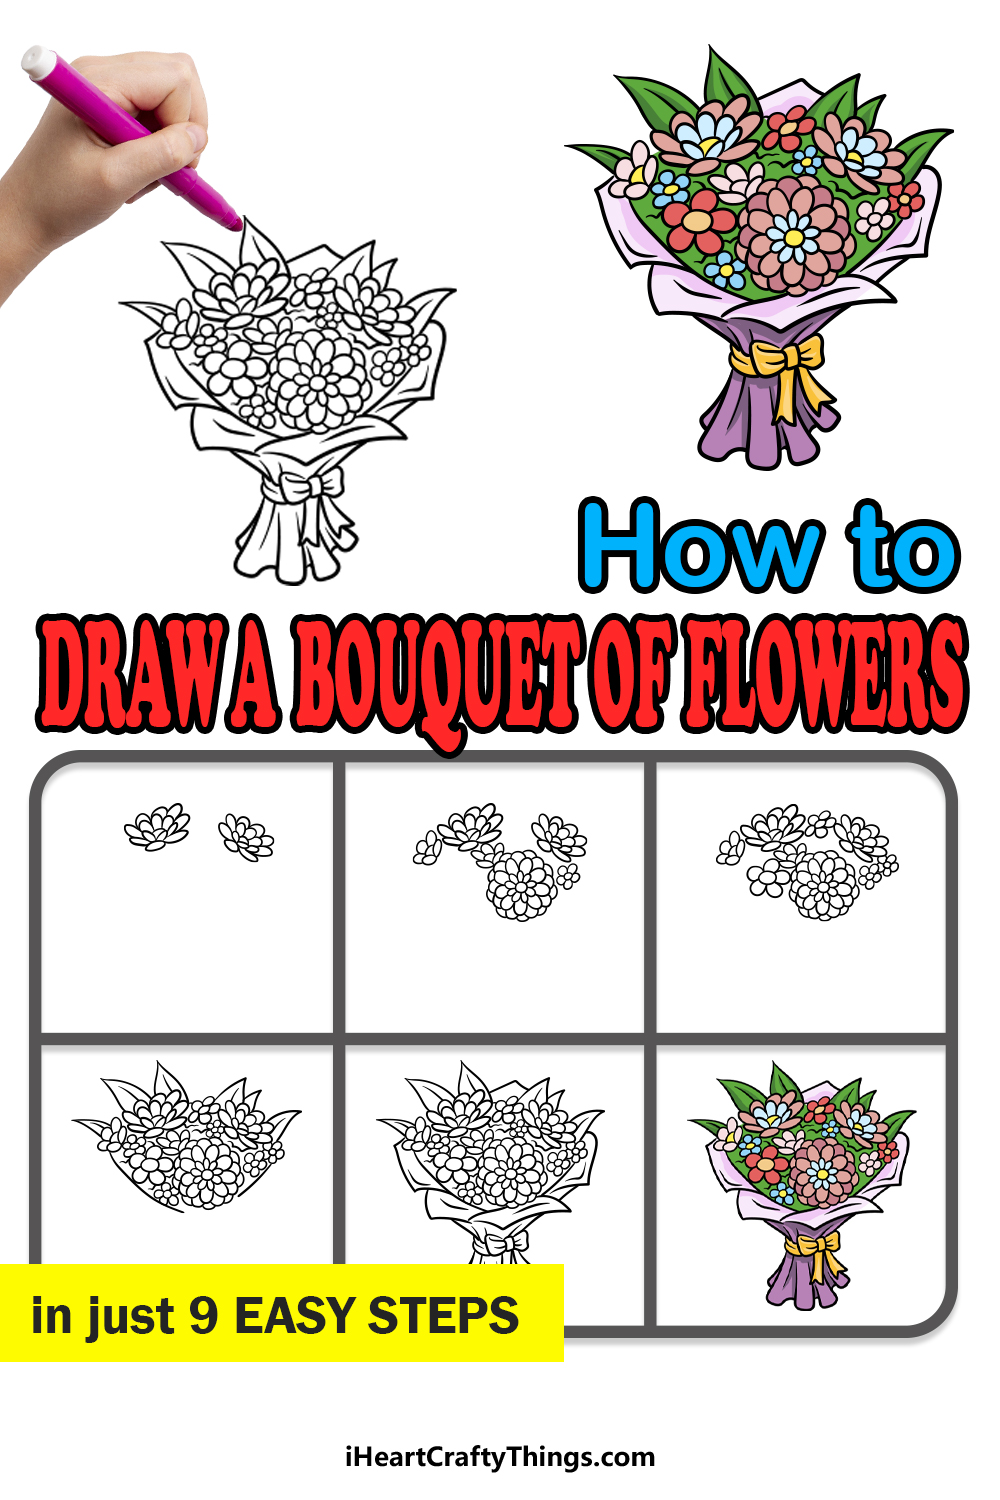 how to draw a bouquet of flowers in 9 easy steps